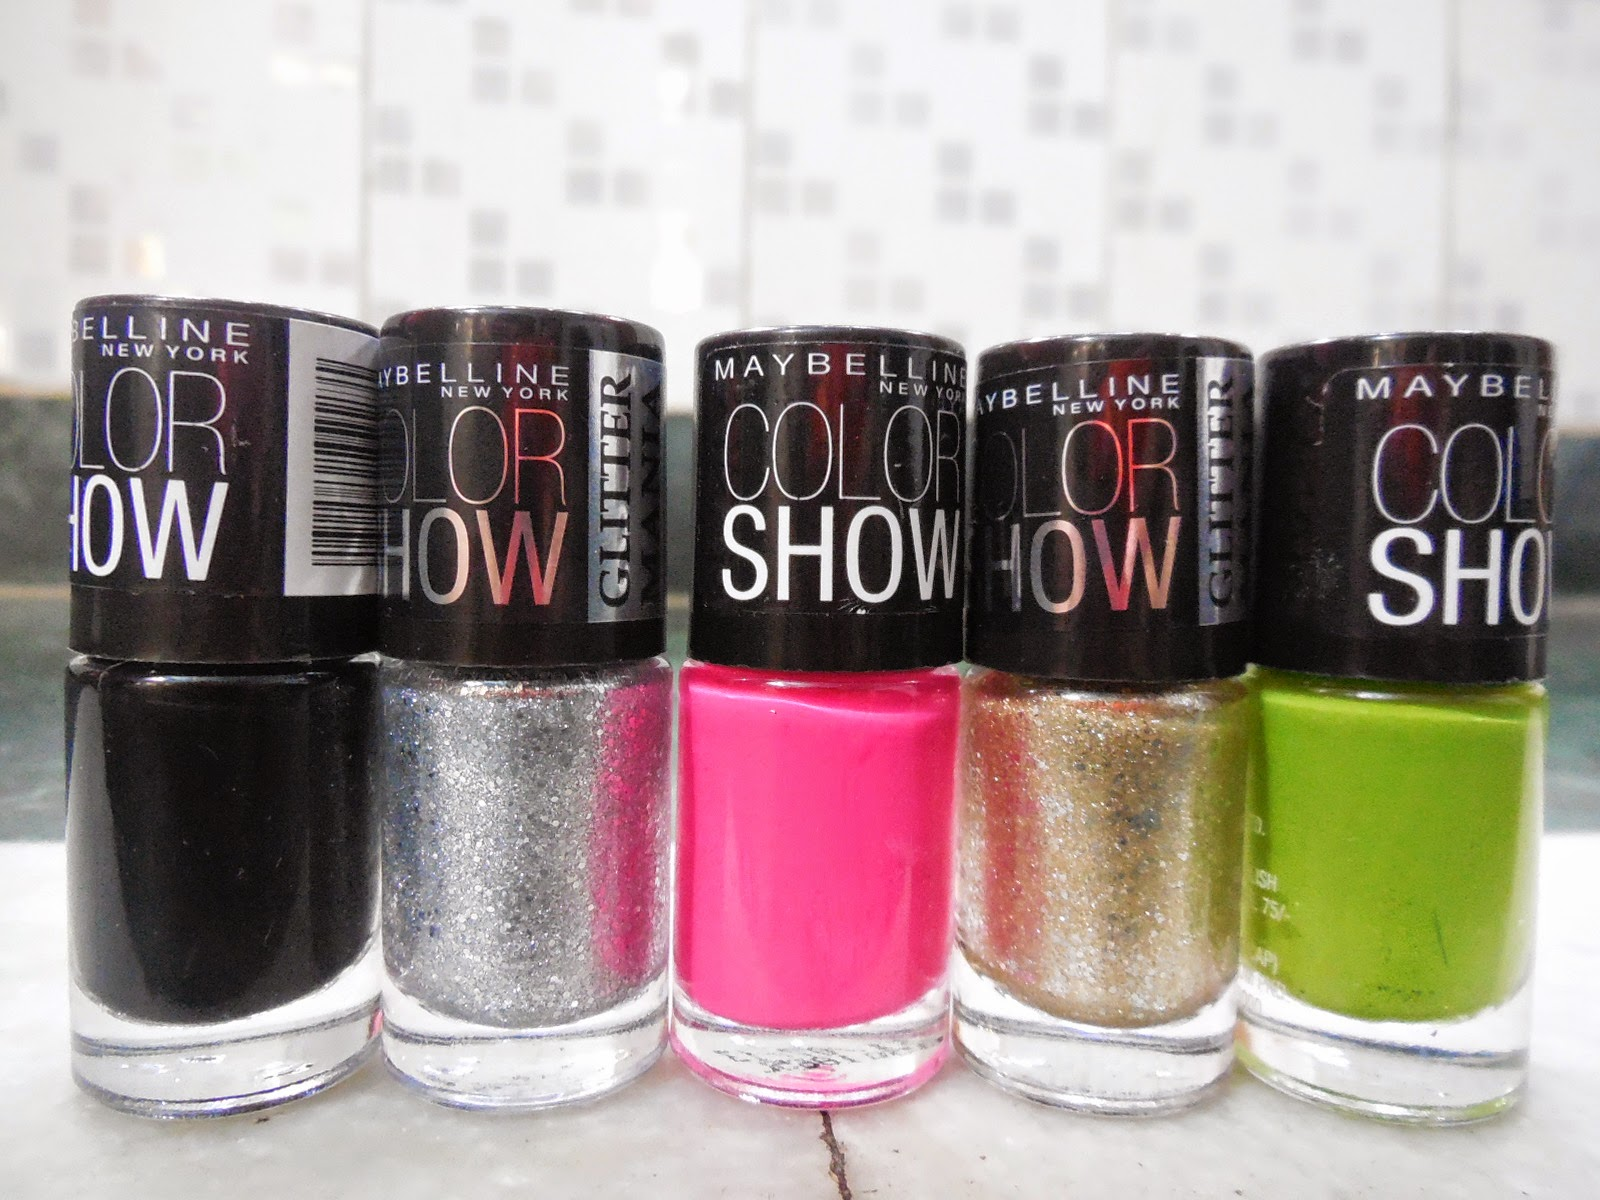 Maybelline colorshow Nail Paints Review